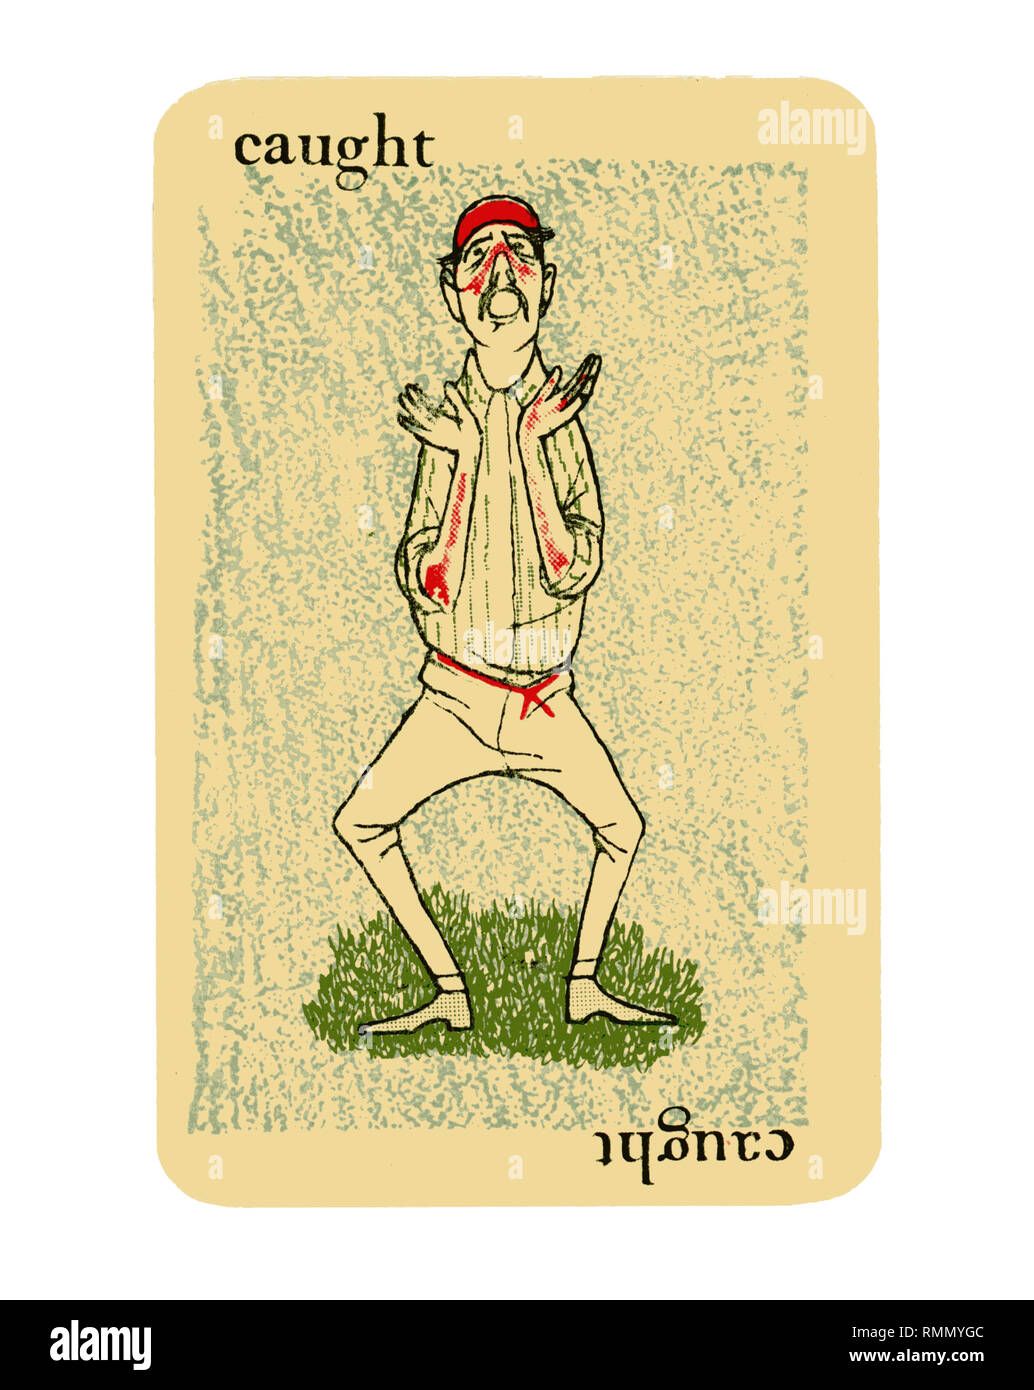 Single card 'CAUGHT' from a vintage cricket card game of GOOGLY by Smith & Hallam Ltd of London. Isolated on white background - Stock Image